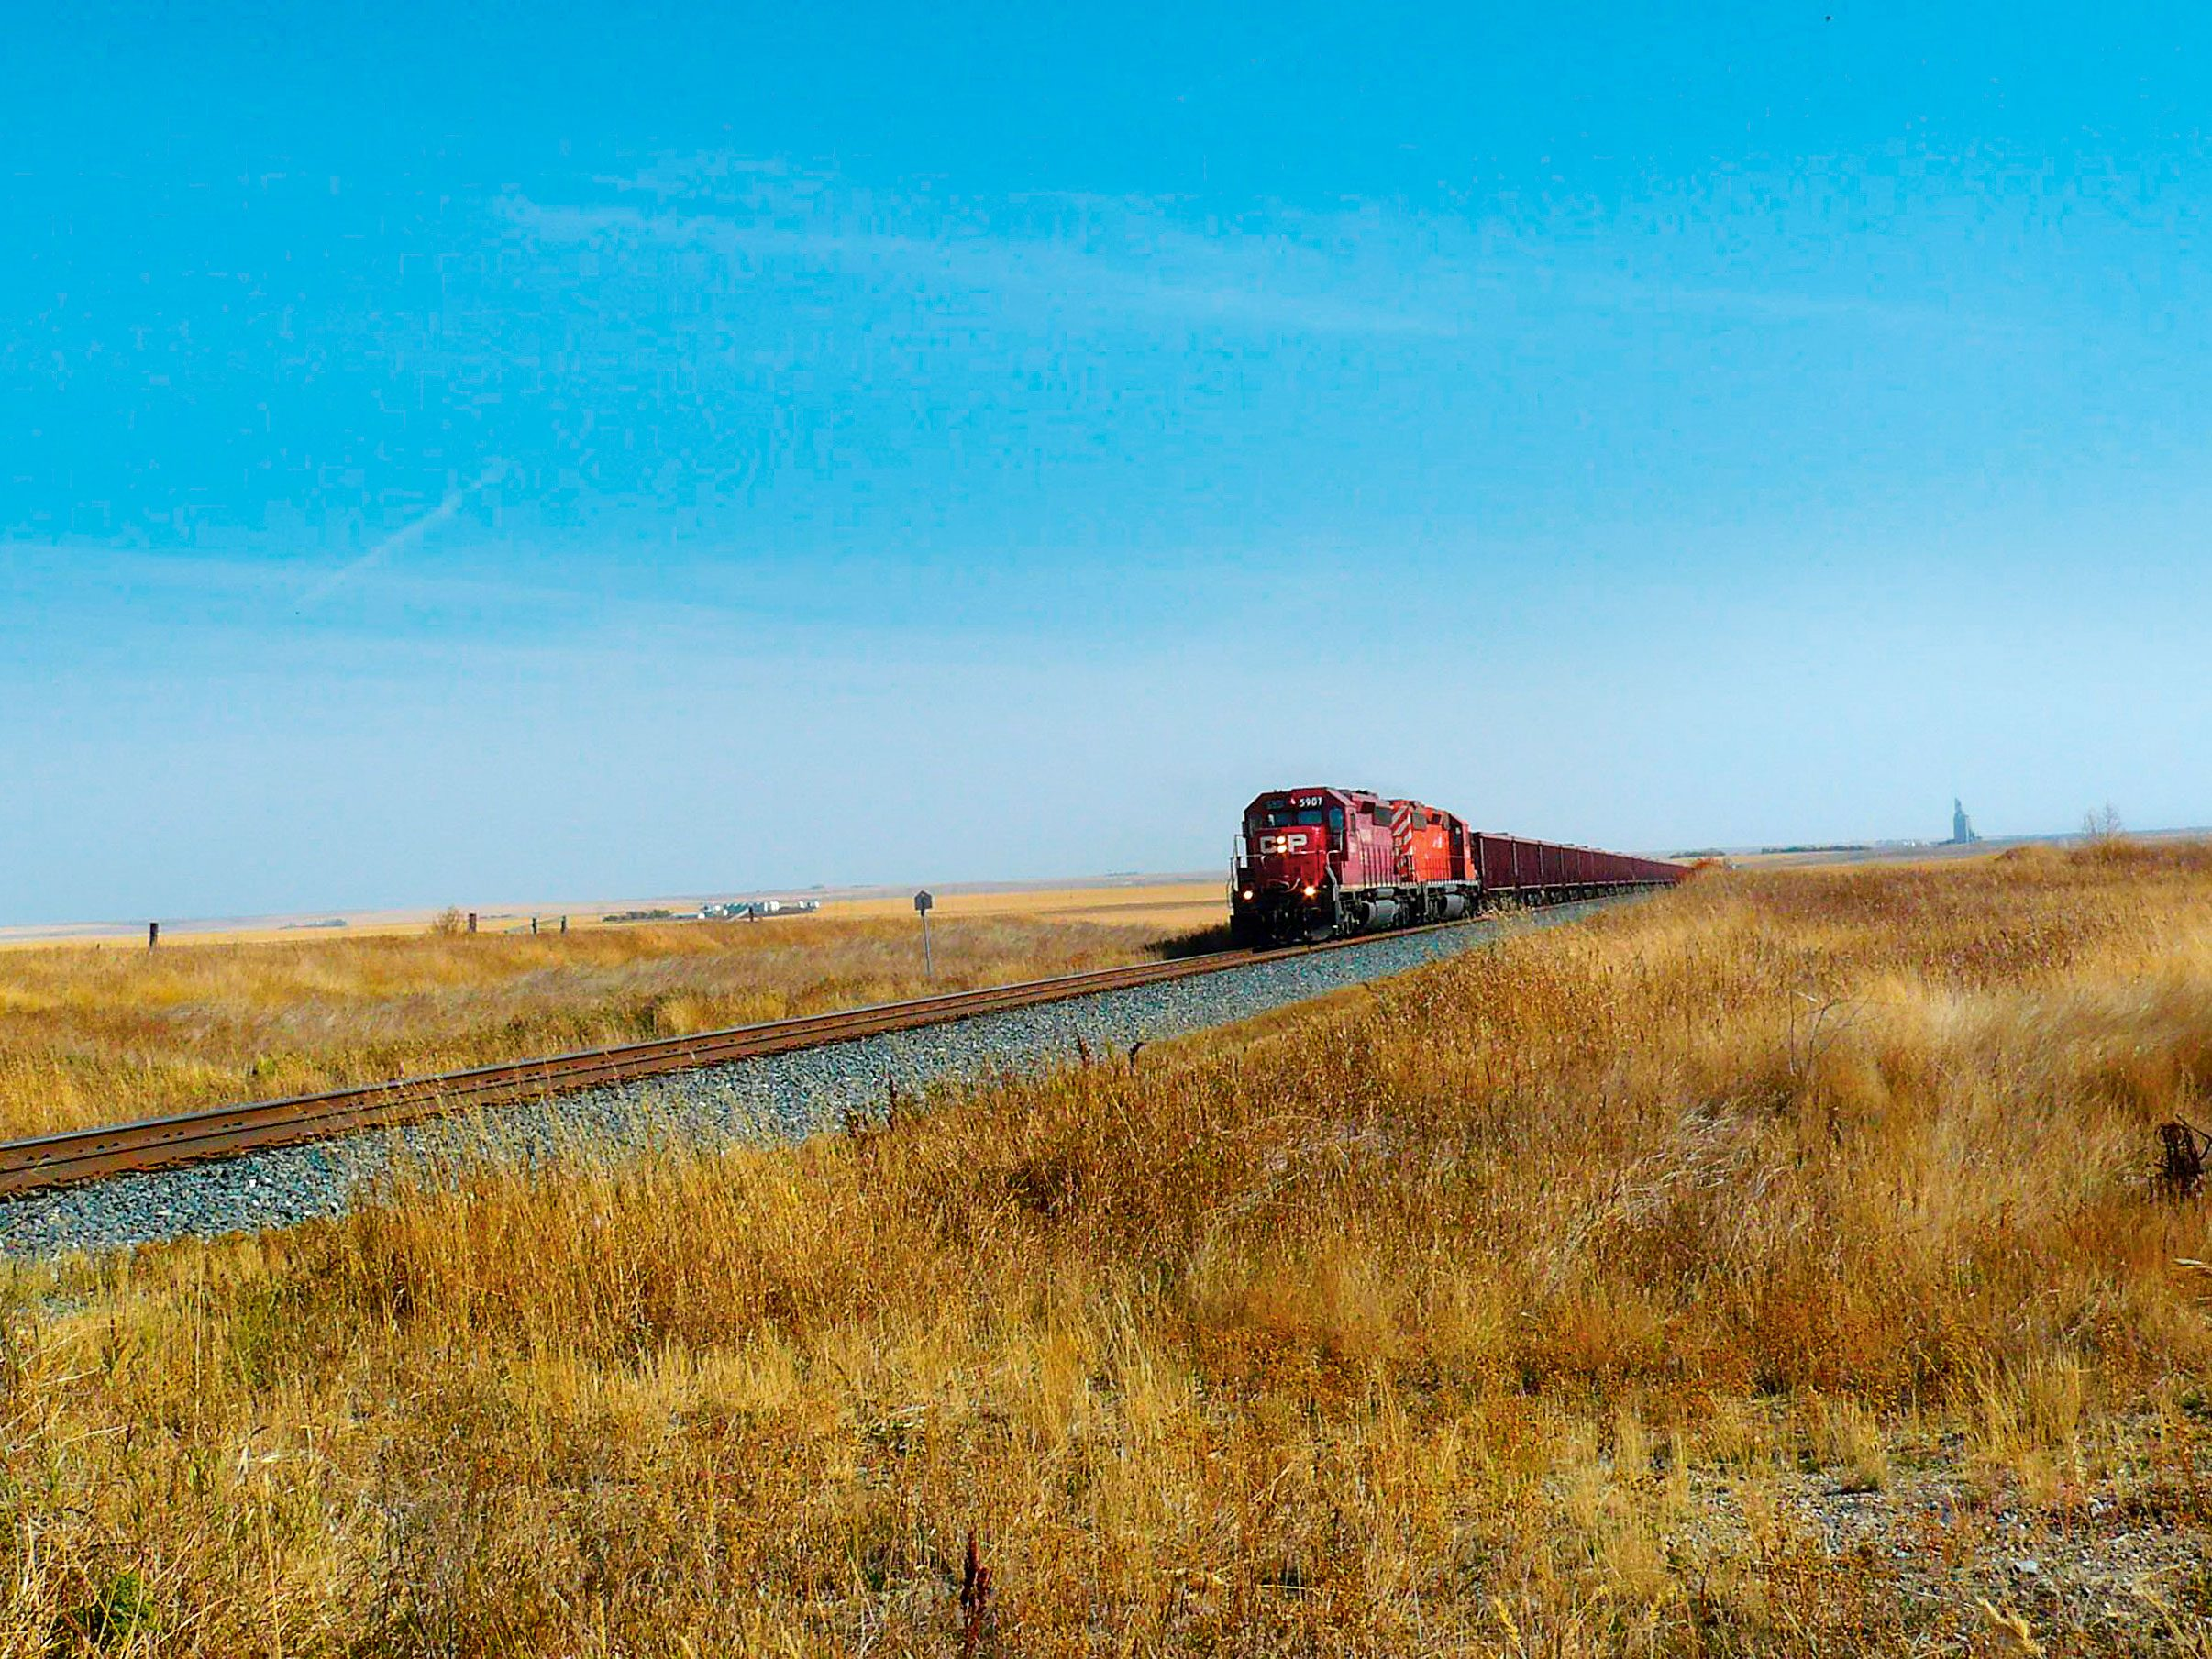 Train spotting in Herbert, Sask.